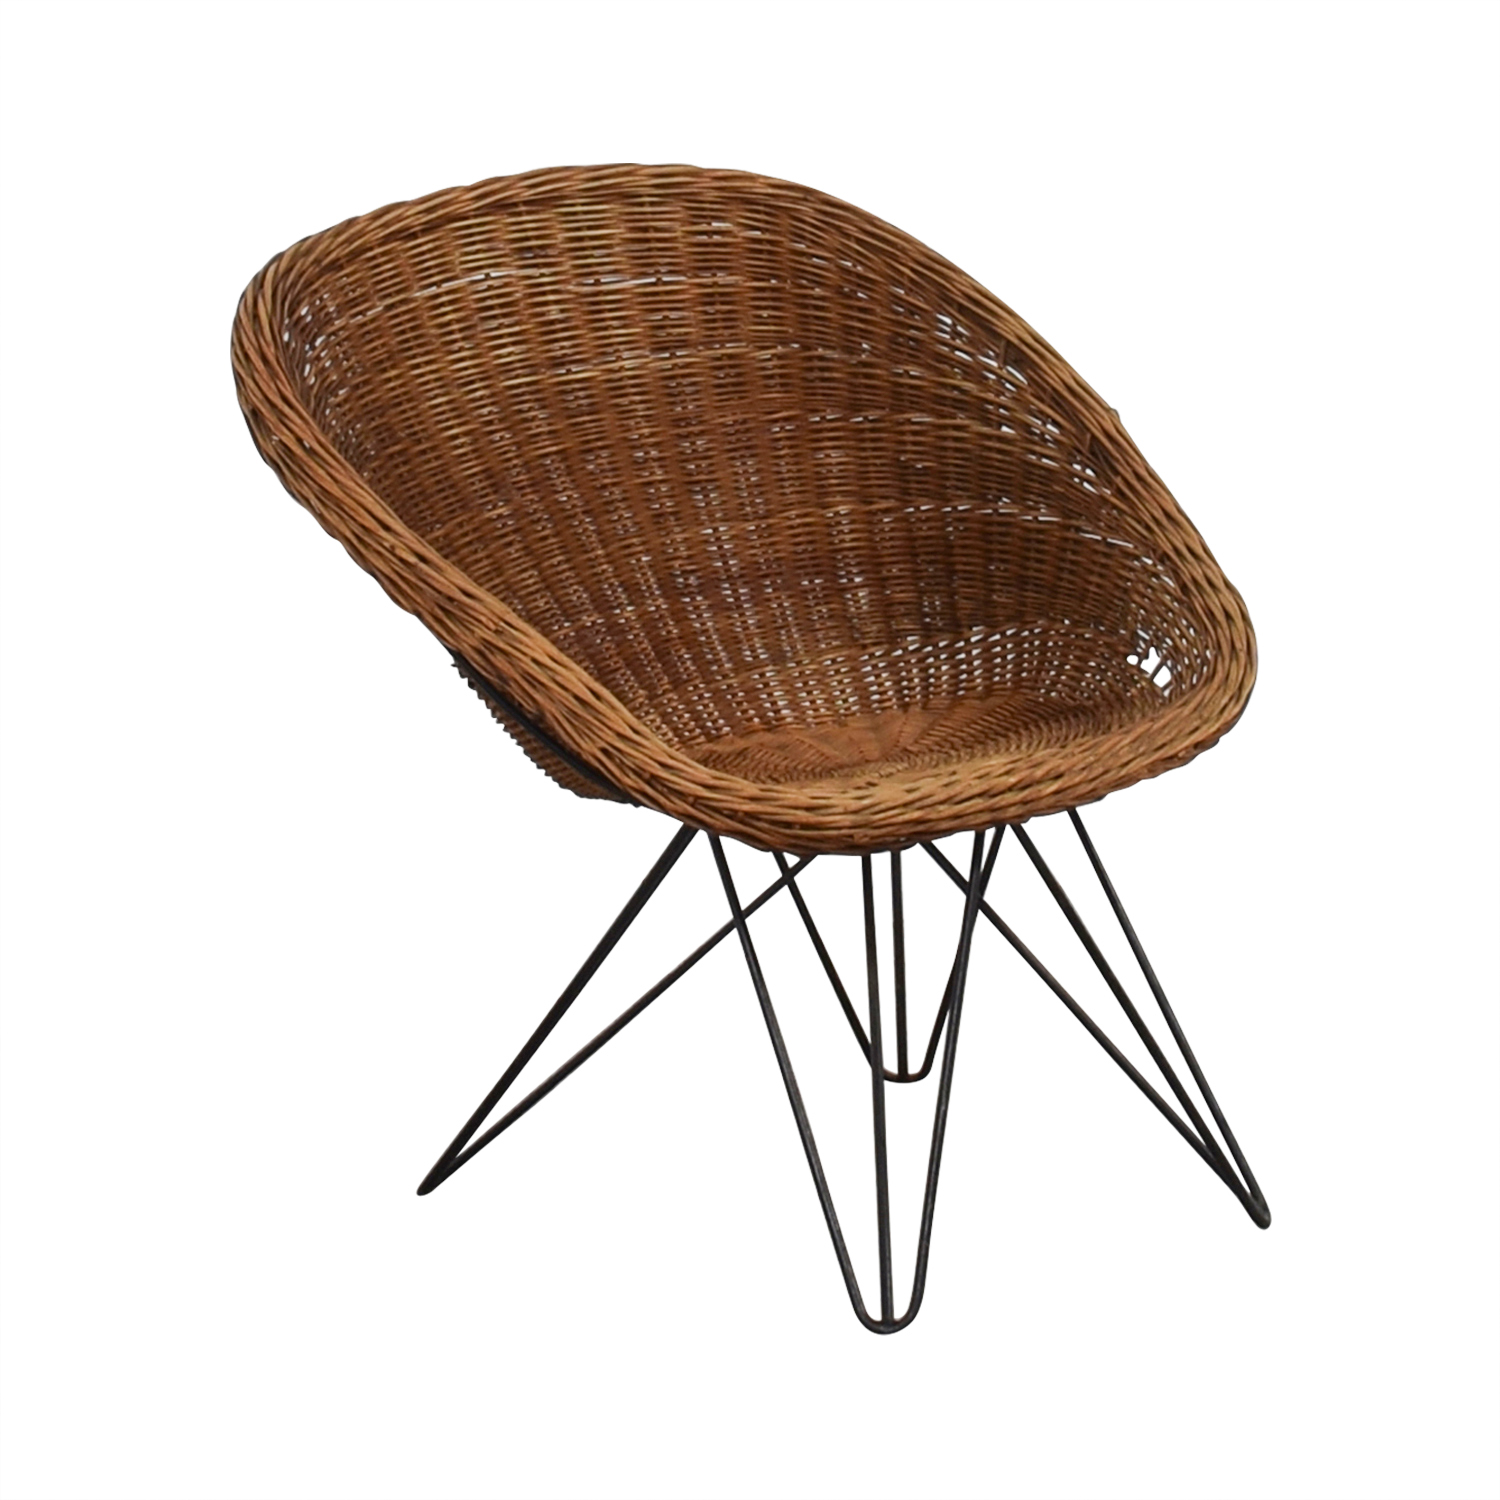 Wicker Chair with Metal Legs on sale